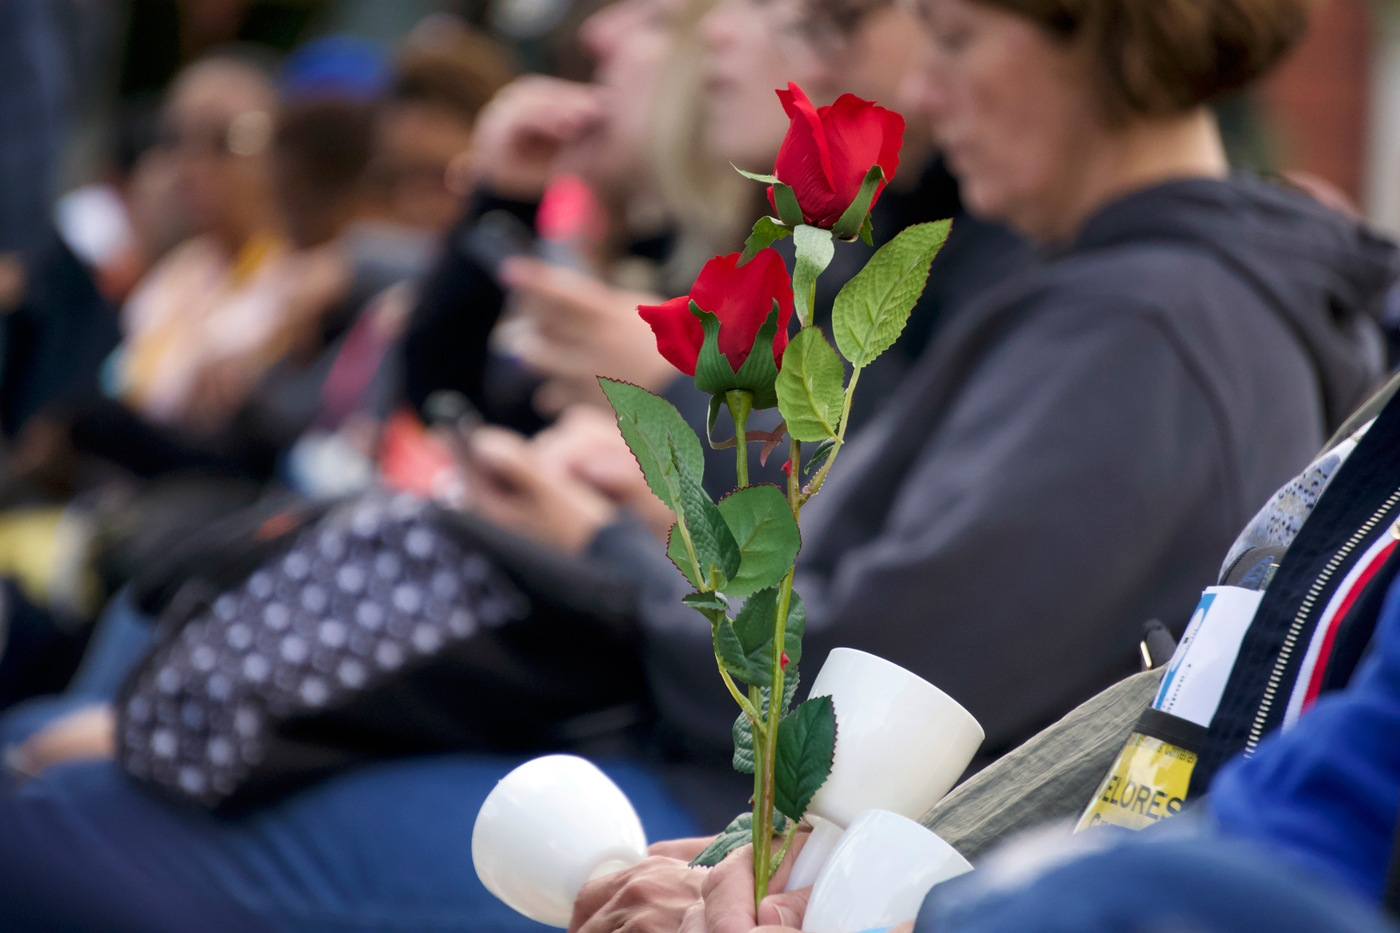 Flowers are held during a May 13, 2019 candlelight vigil honoring fallen officers on the National Mall in Washington, D.C., during National Police Week.